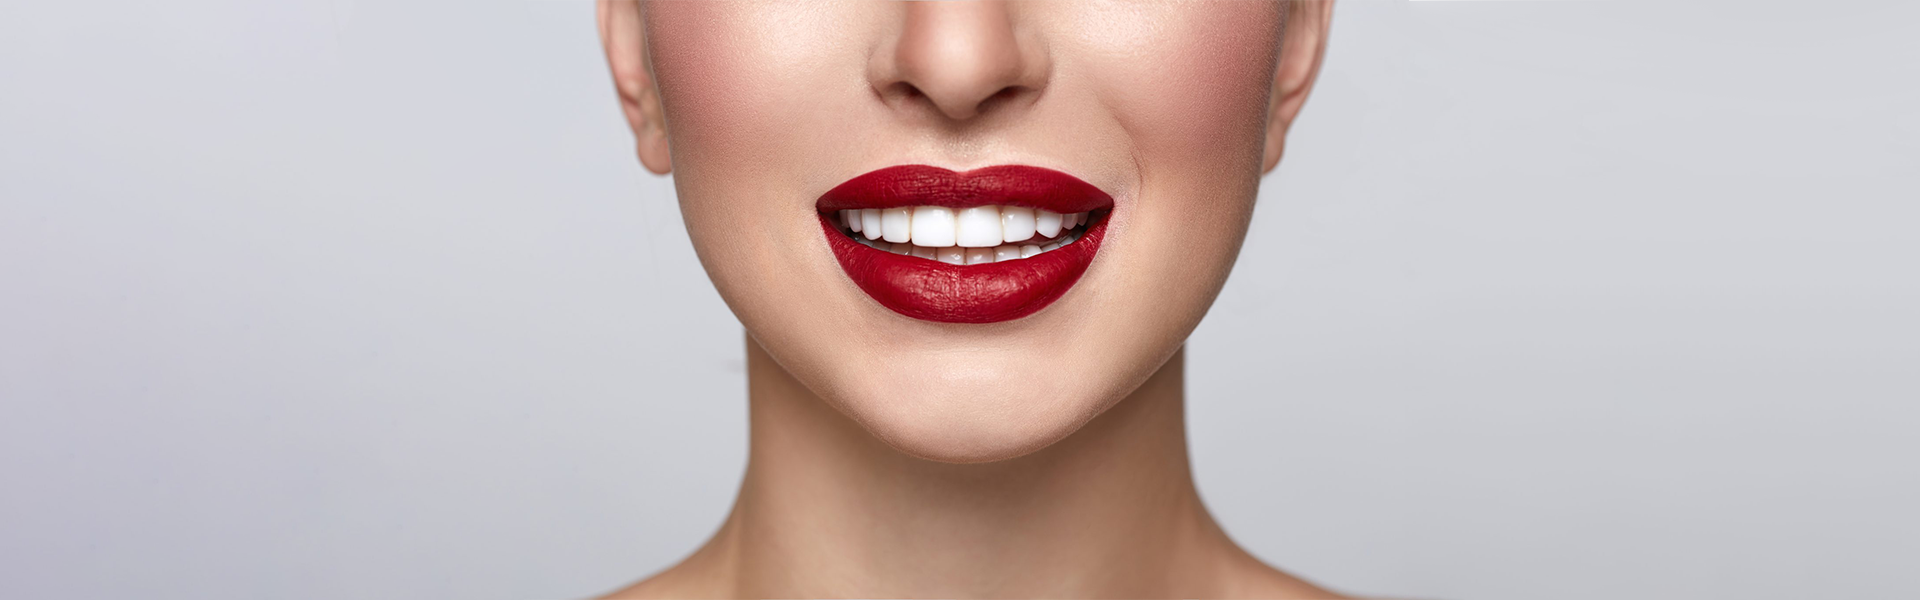 Dental Veneers: Excellent Options for Improving the Appearance of Your Smile